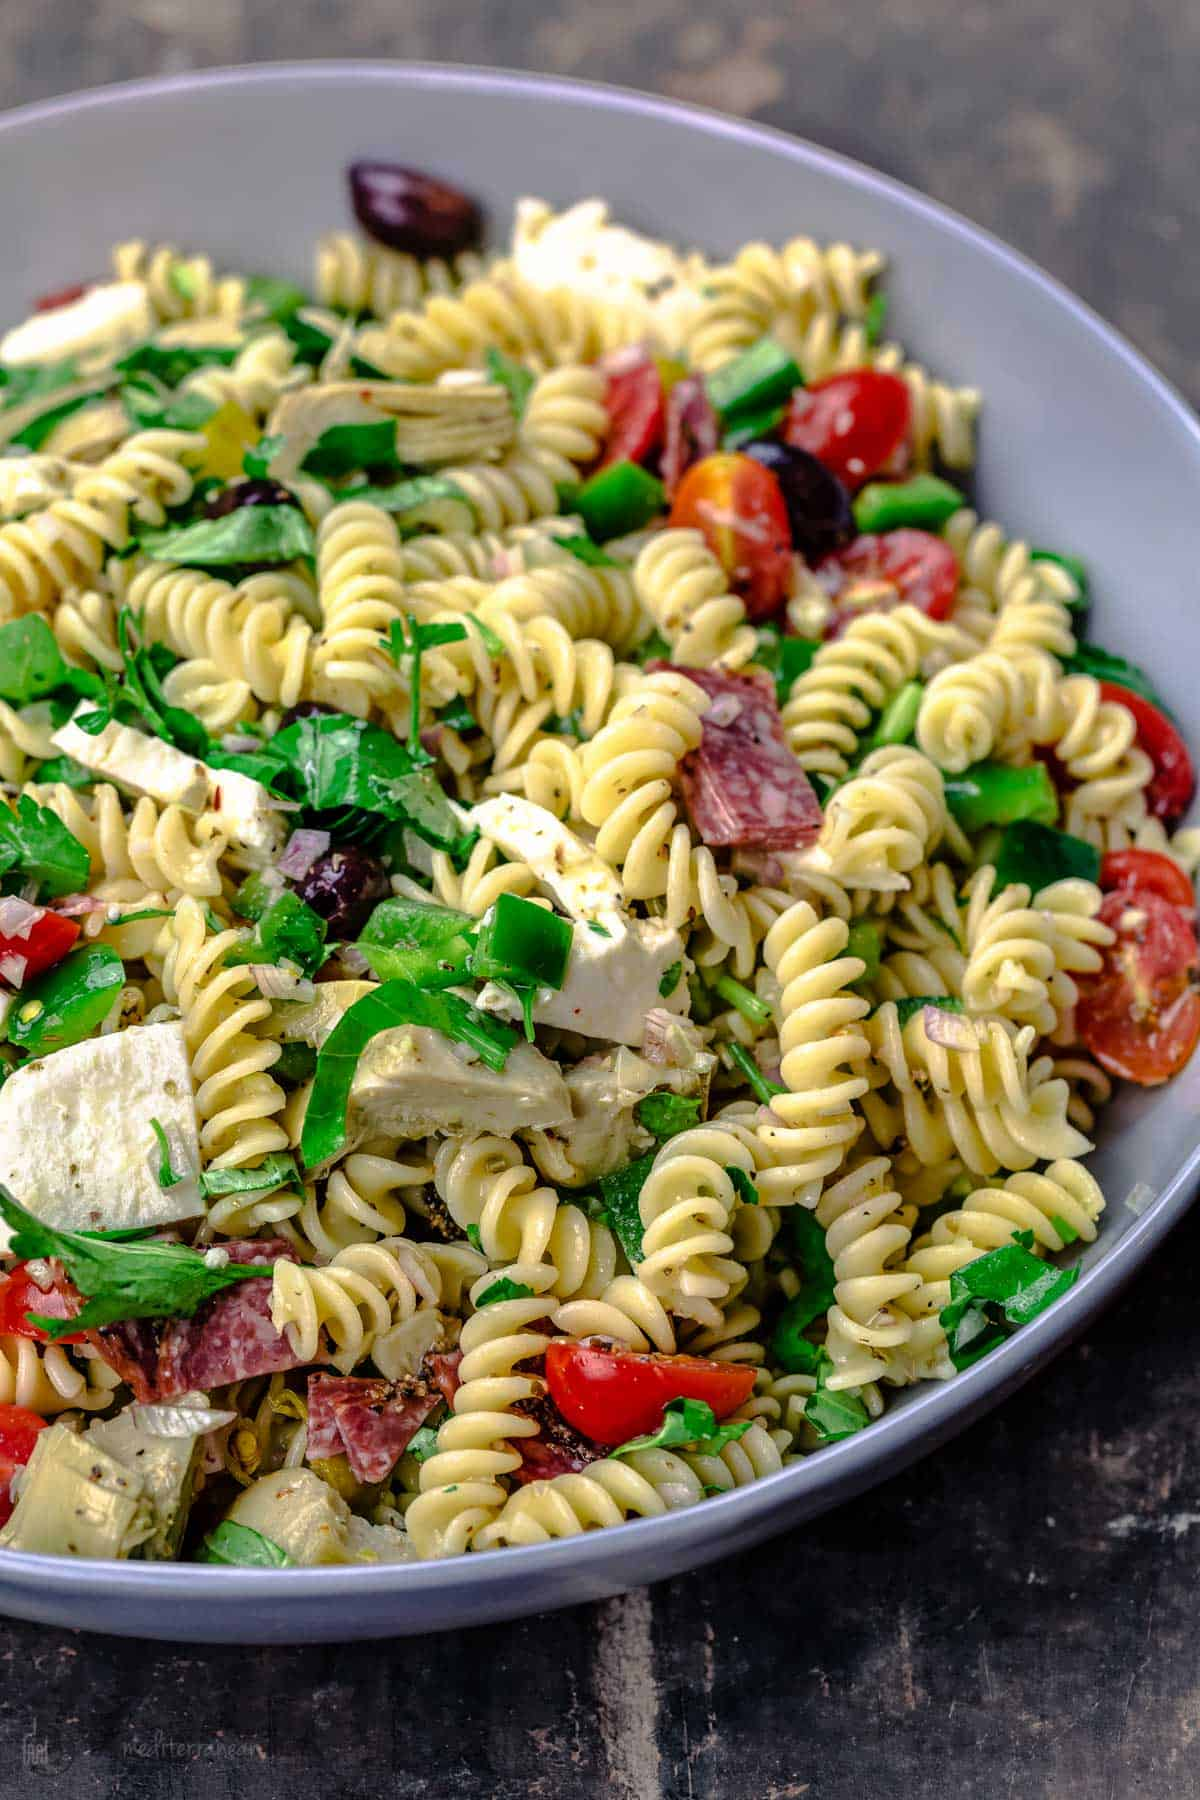 Italian pasta salad with fresh veggies, mozzarella and salami, tossed in a big bowl